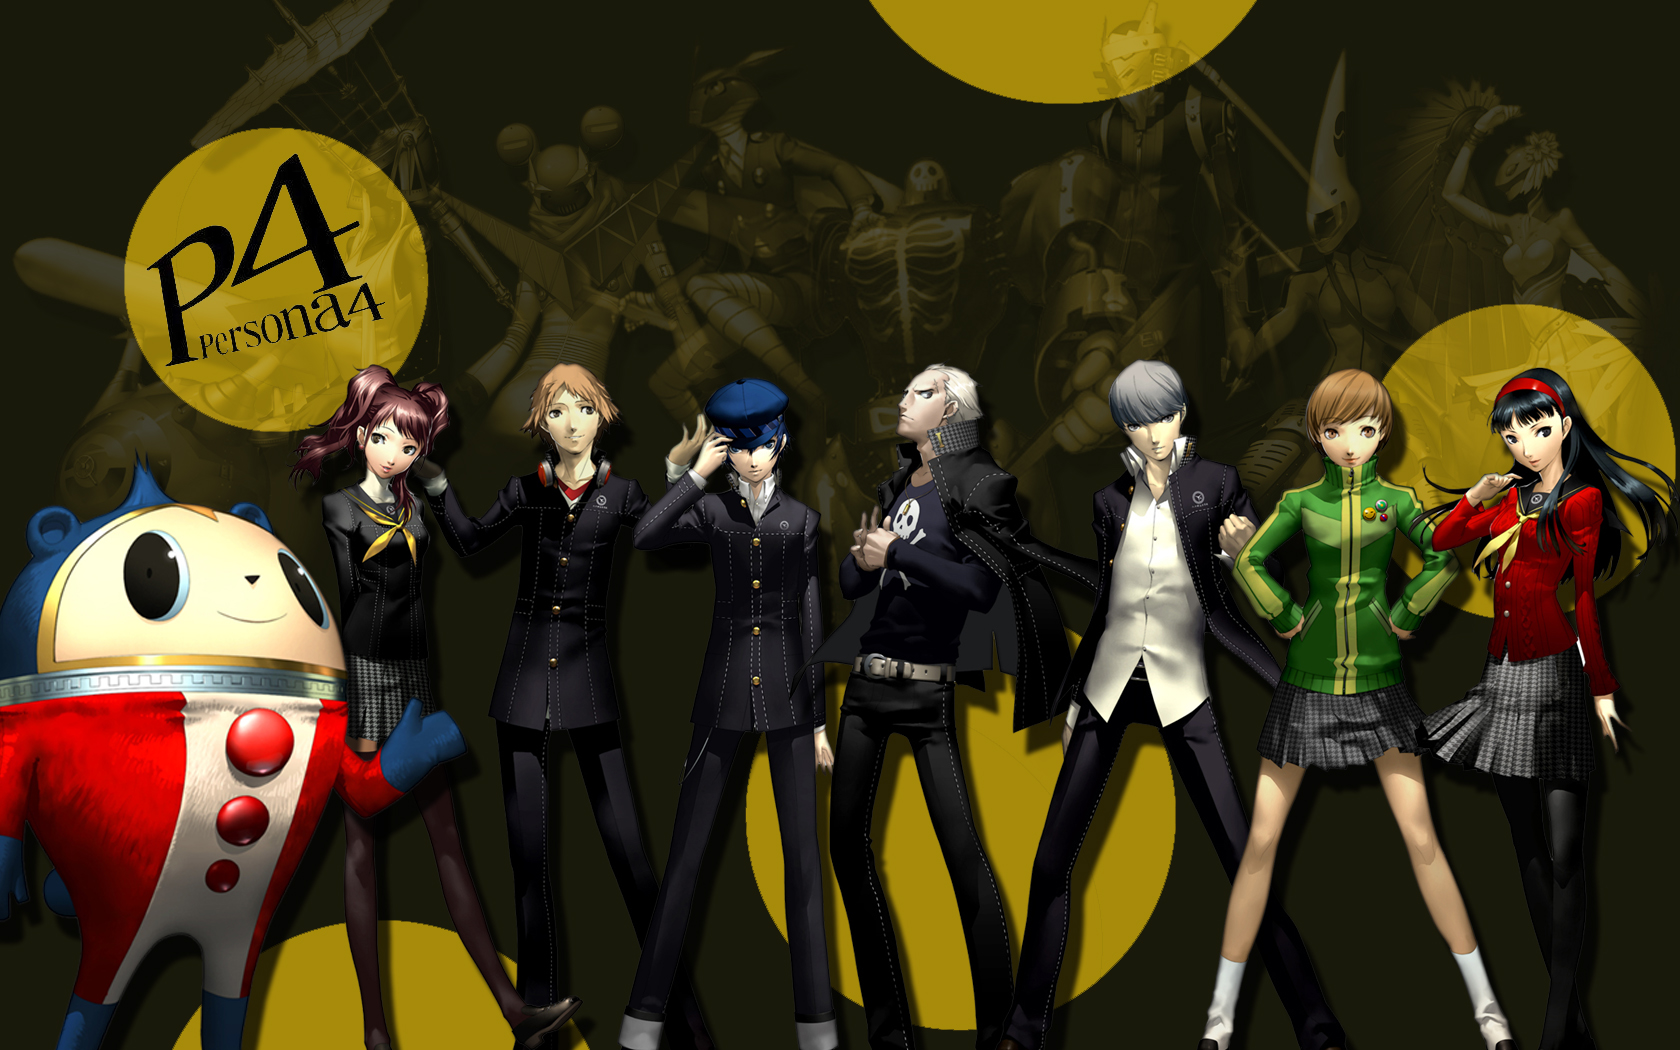 Persona 4 Takes It To The Stage